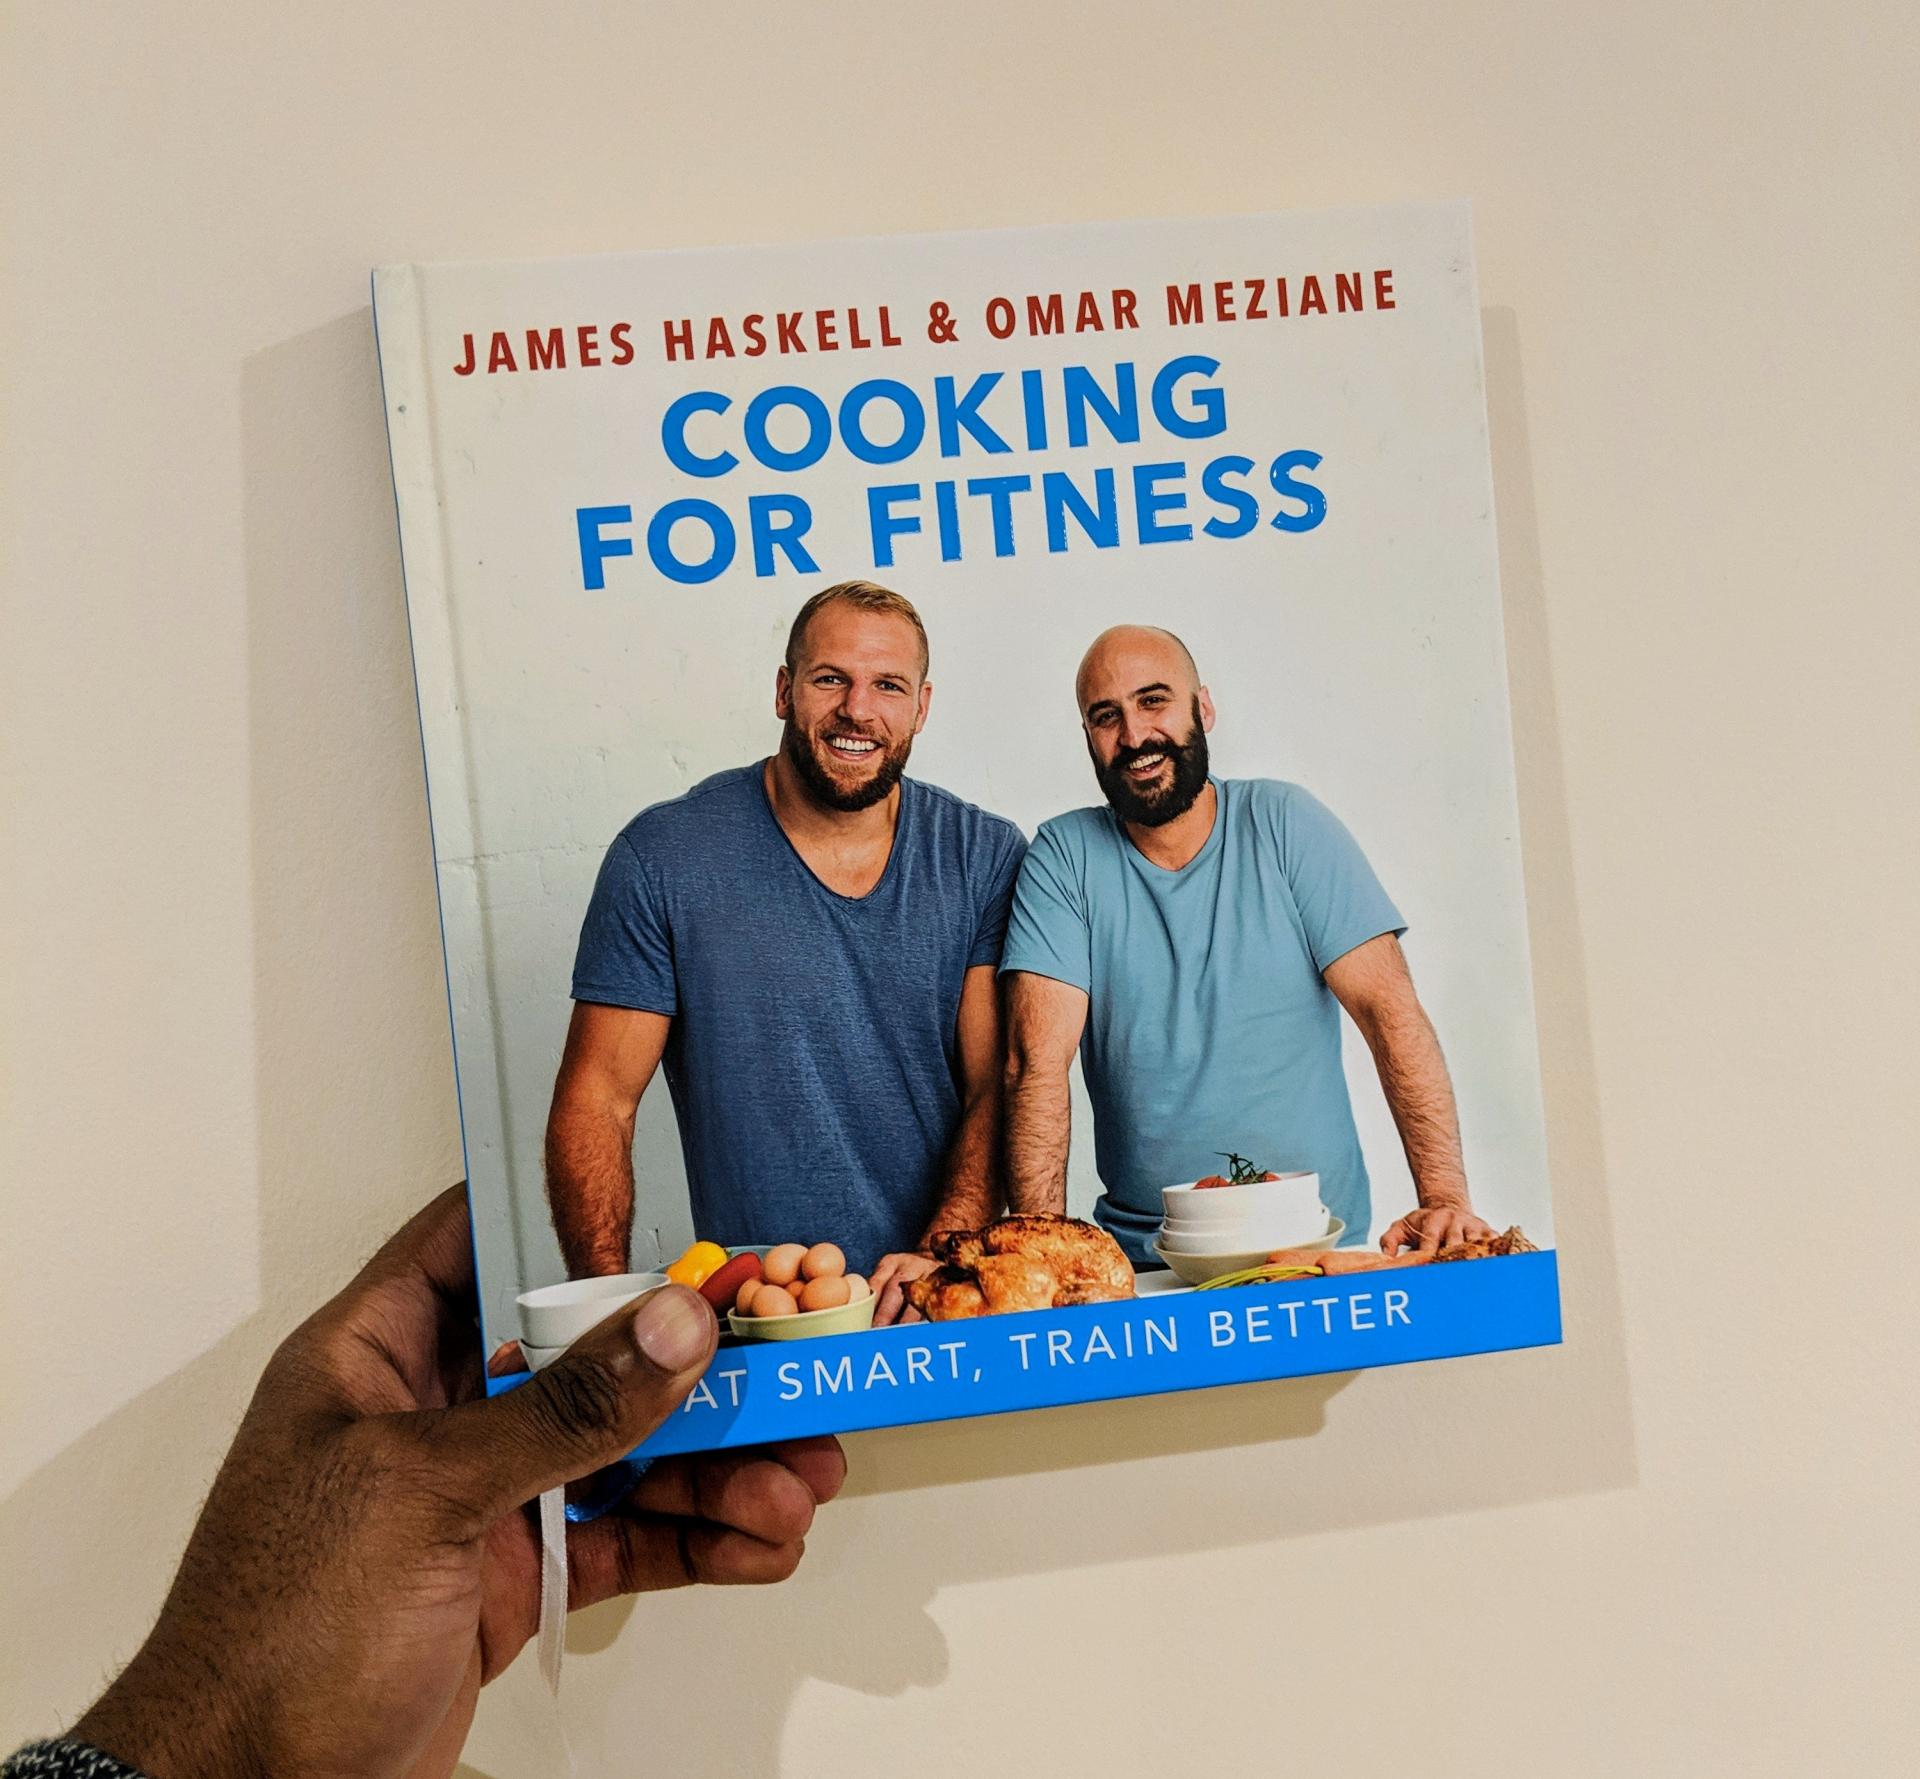 Cooking for Fitness Cookbook written by James Haskell and Omar Meziane